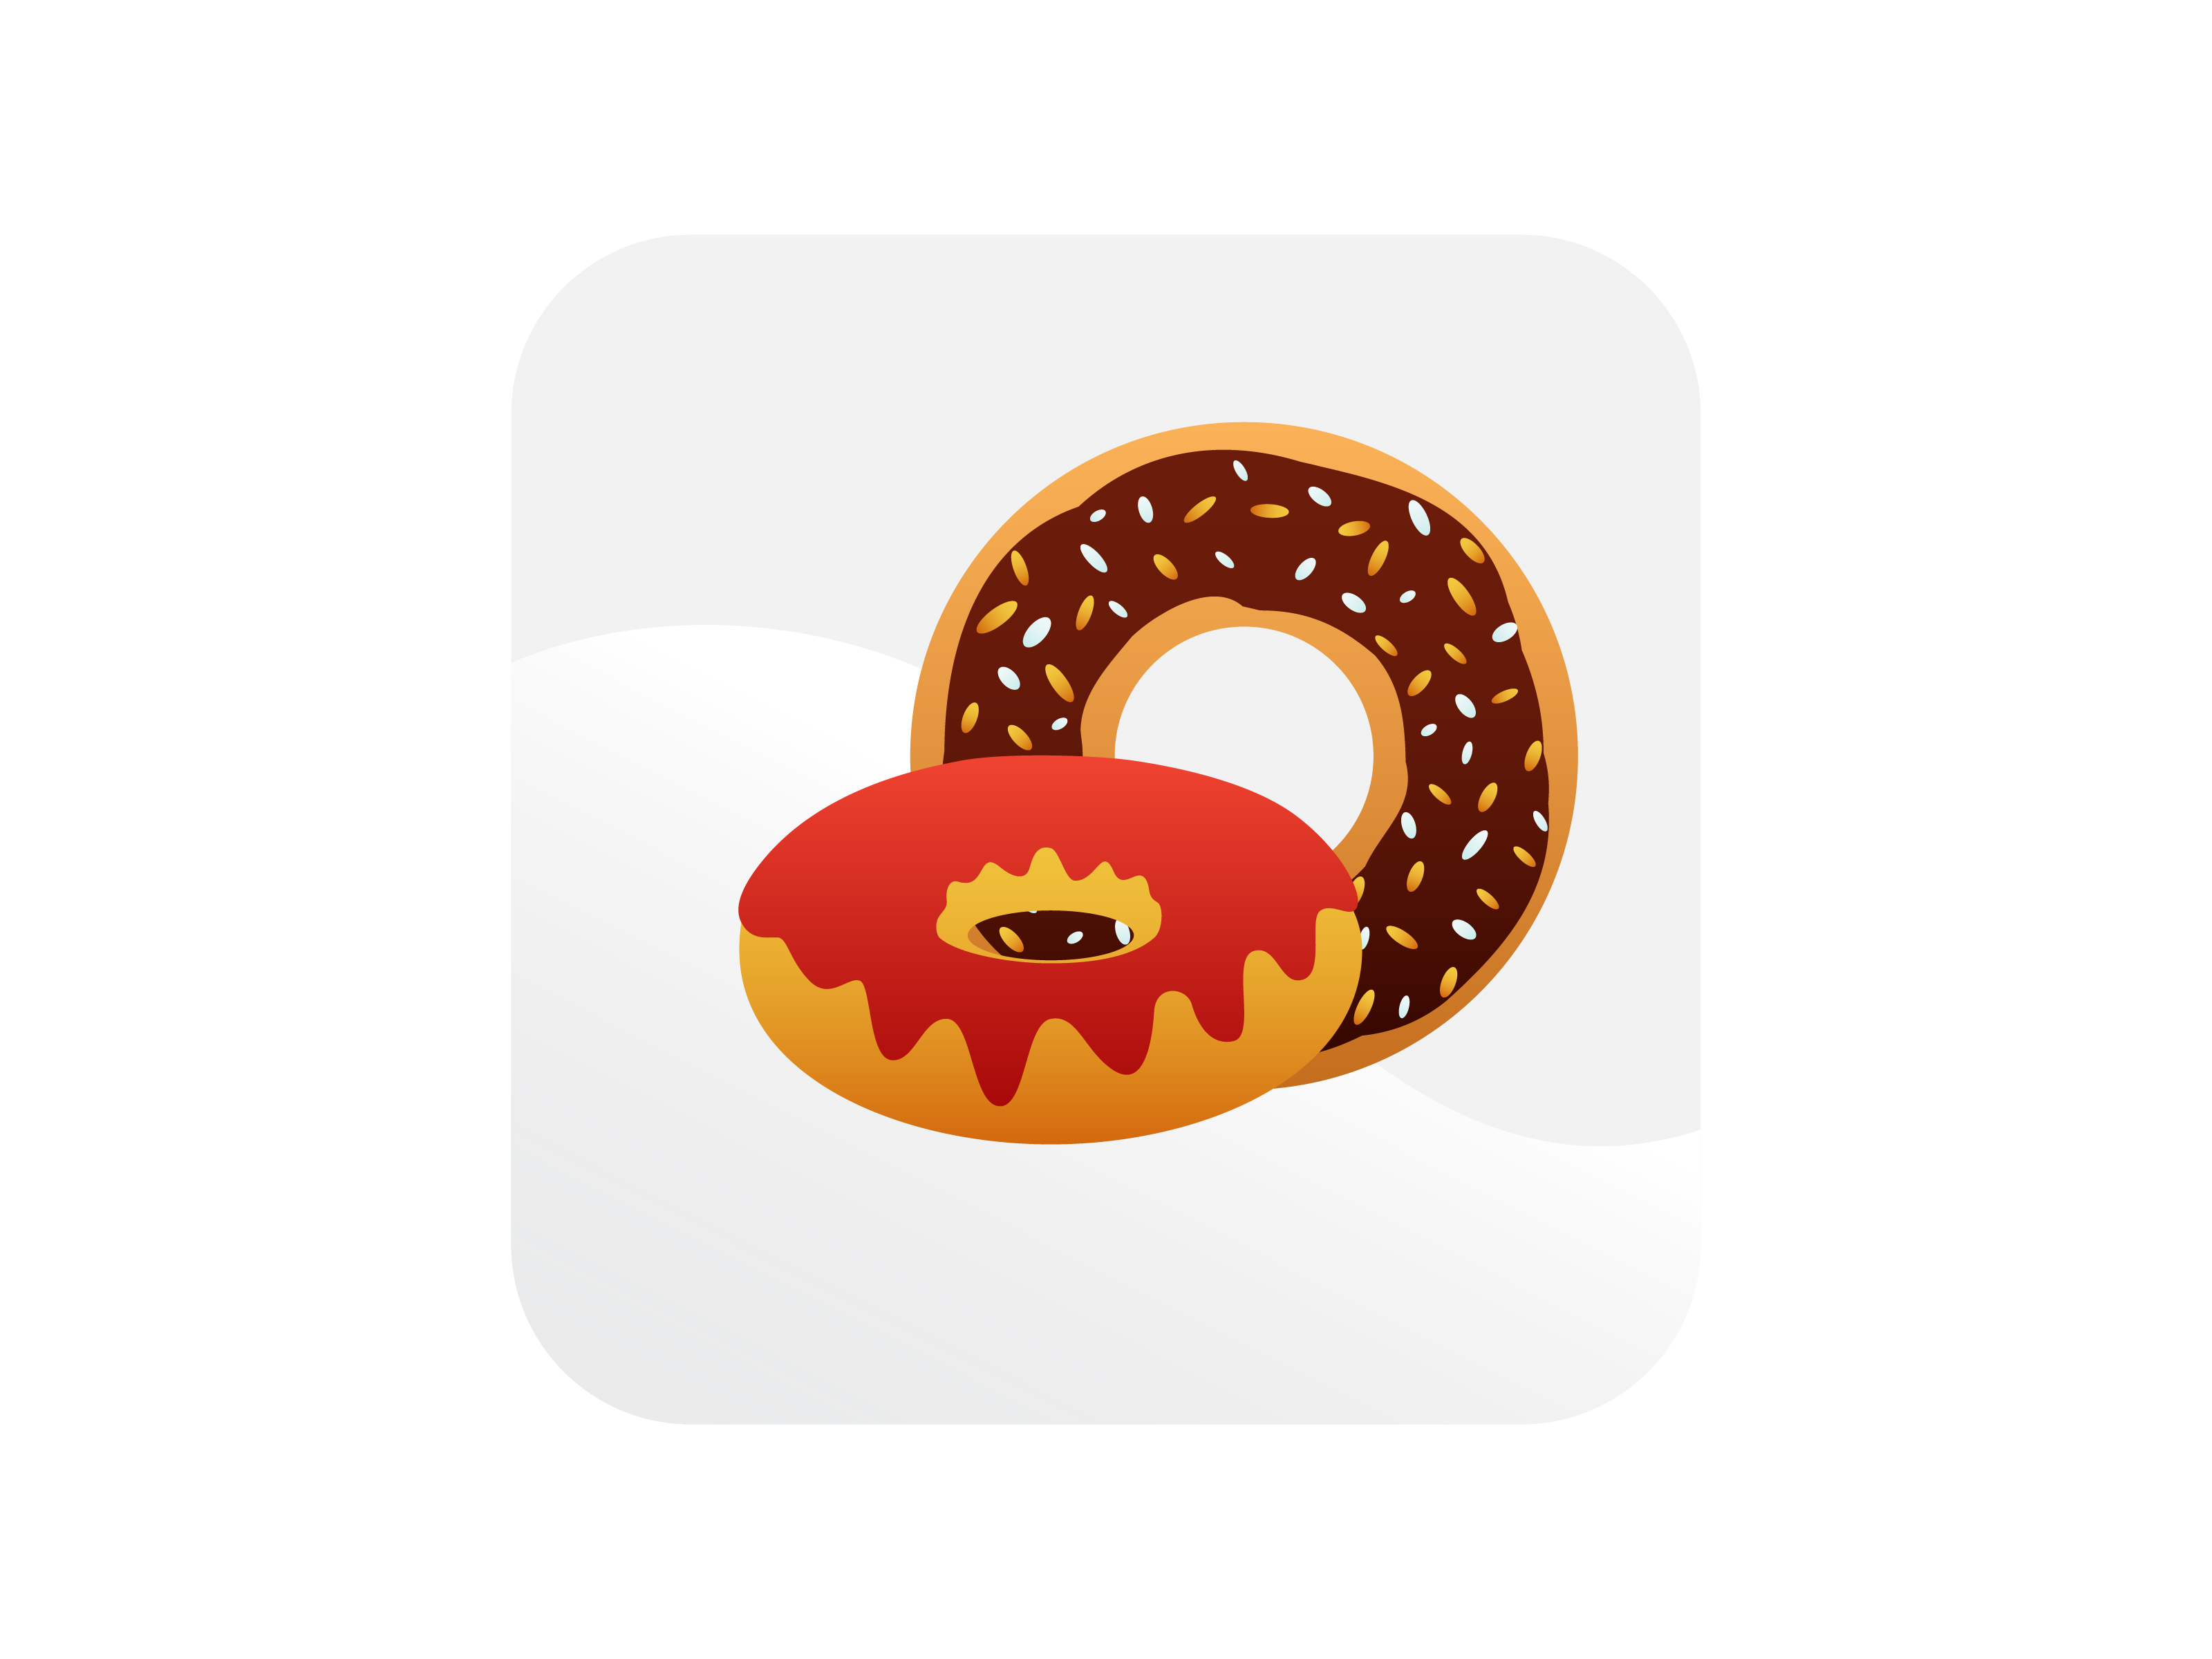 Download Free Donut Chocolate And Strawberry Icon Graphic By Samagata for Cricut Explore, Silhouette and other cutting machines.